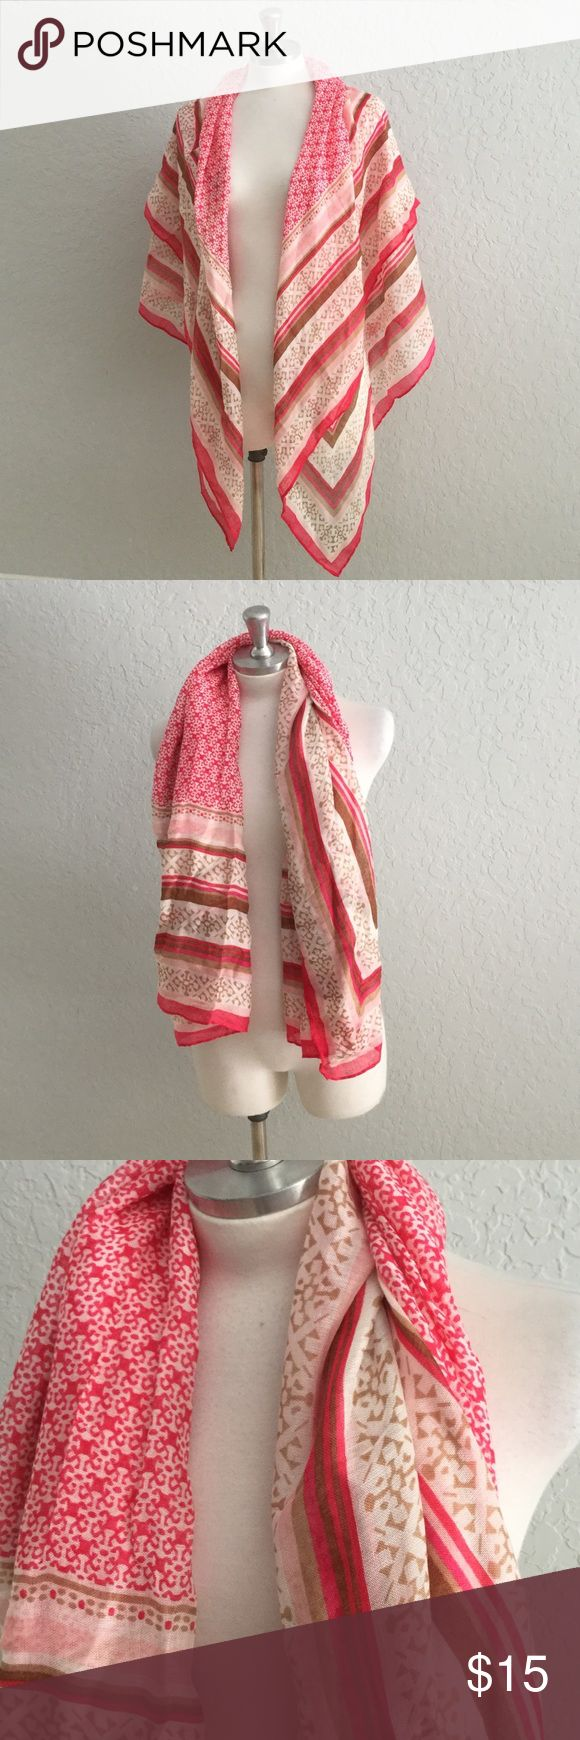 NWT Pink & Beige Scarf or Wrap 🆕 NWT Can be used as a Scarf, Wrap or Bathing Suit Cover Up. Beautiful shades of dark and leather get pink with cream. Picture frame pattern. Size is approximate. Code SBC2 Old Navy Accessories Scarves & Wraps